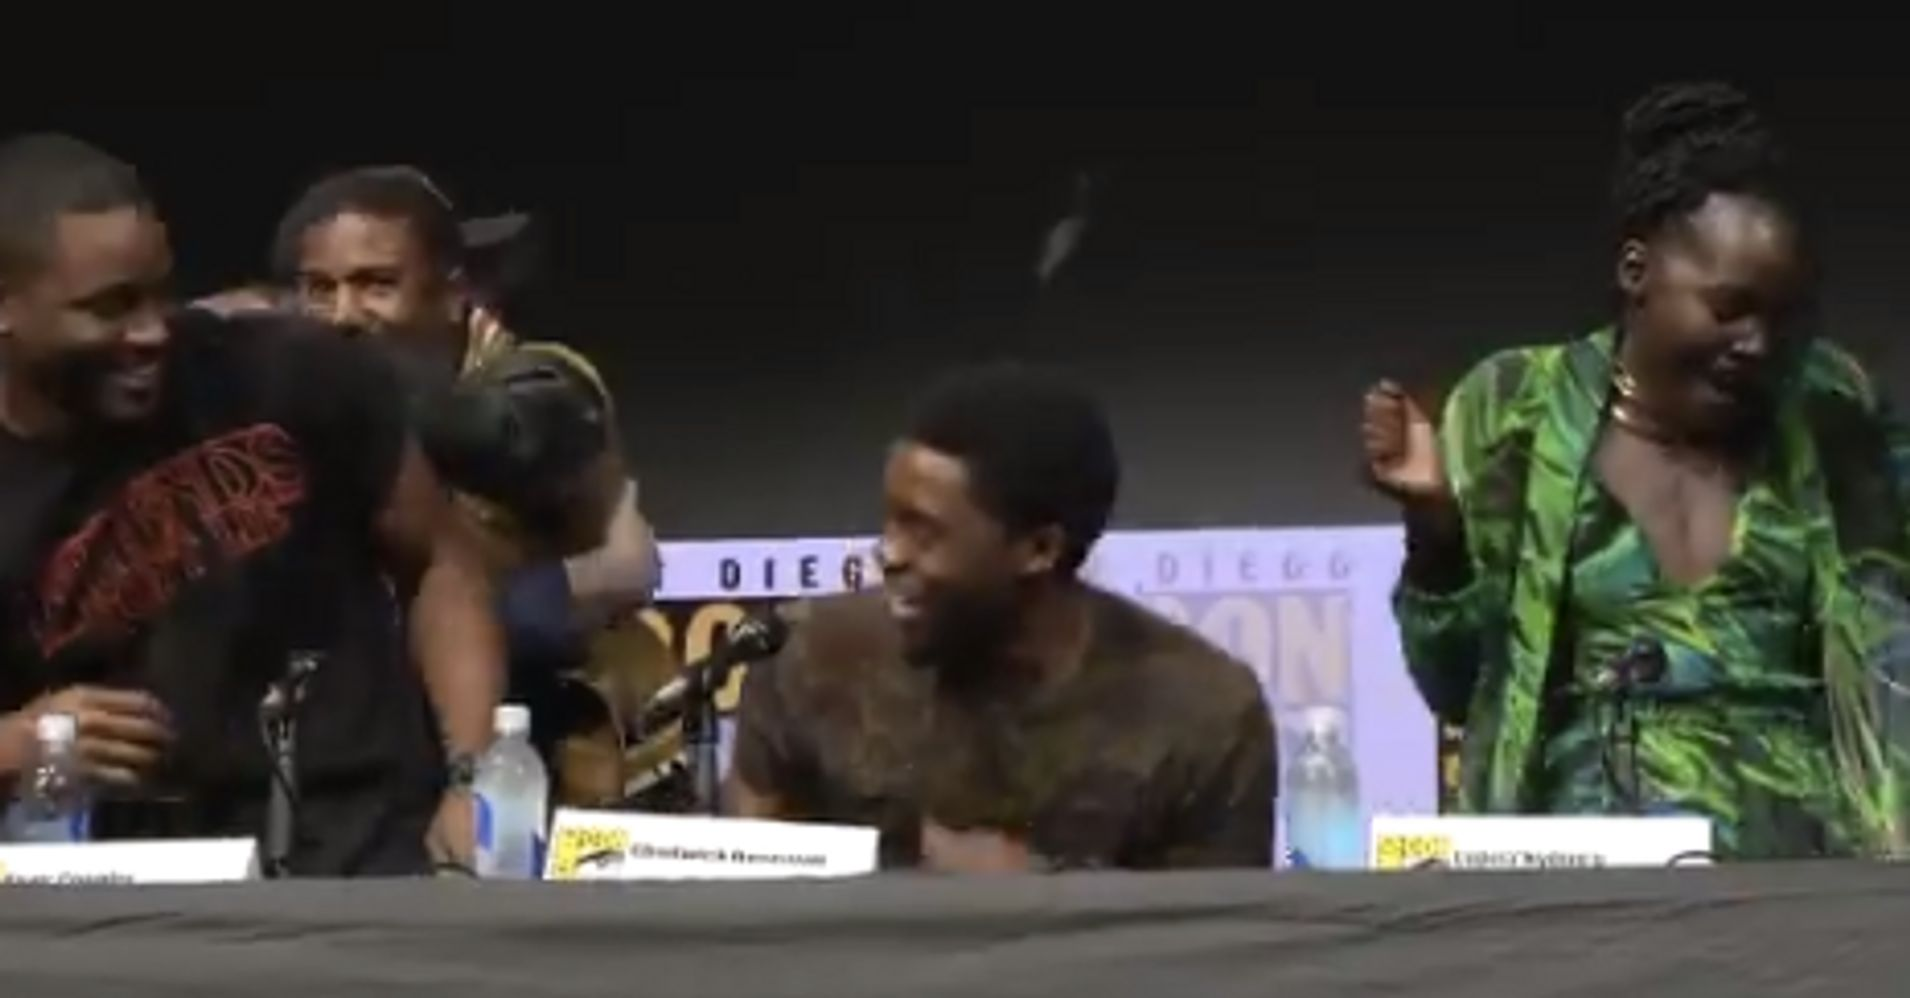 'Black Panther' Cast, Comic-Con Fans Can't Contain Their Joy After Seeing Film's Footage